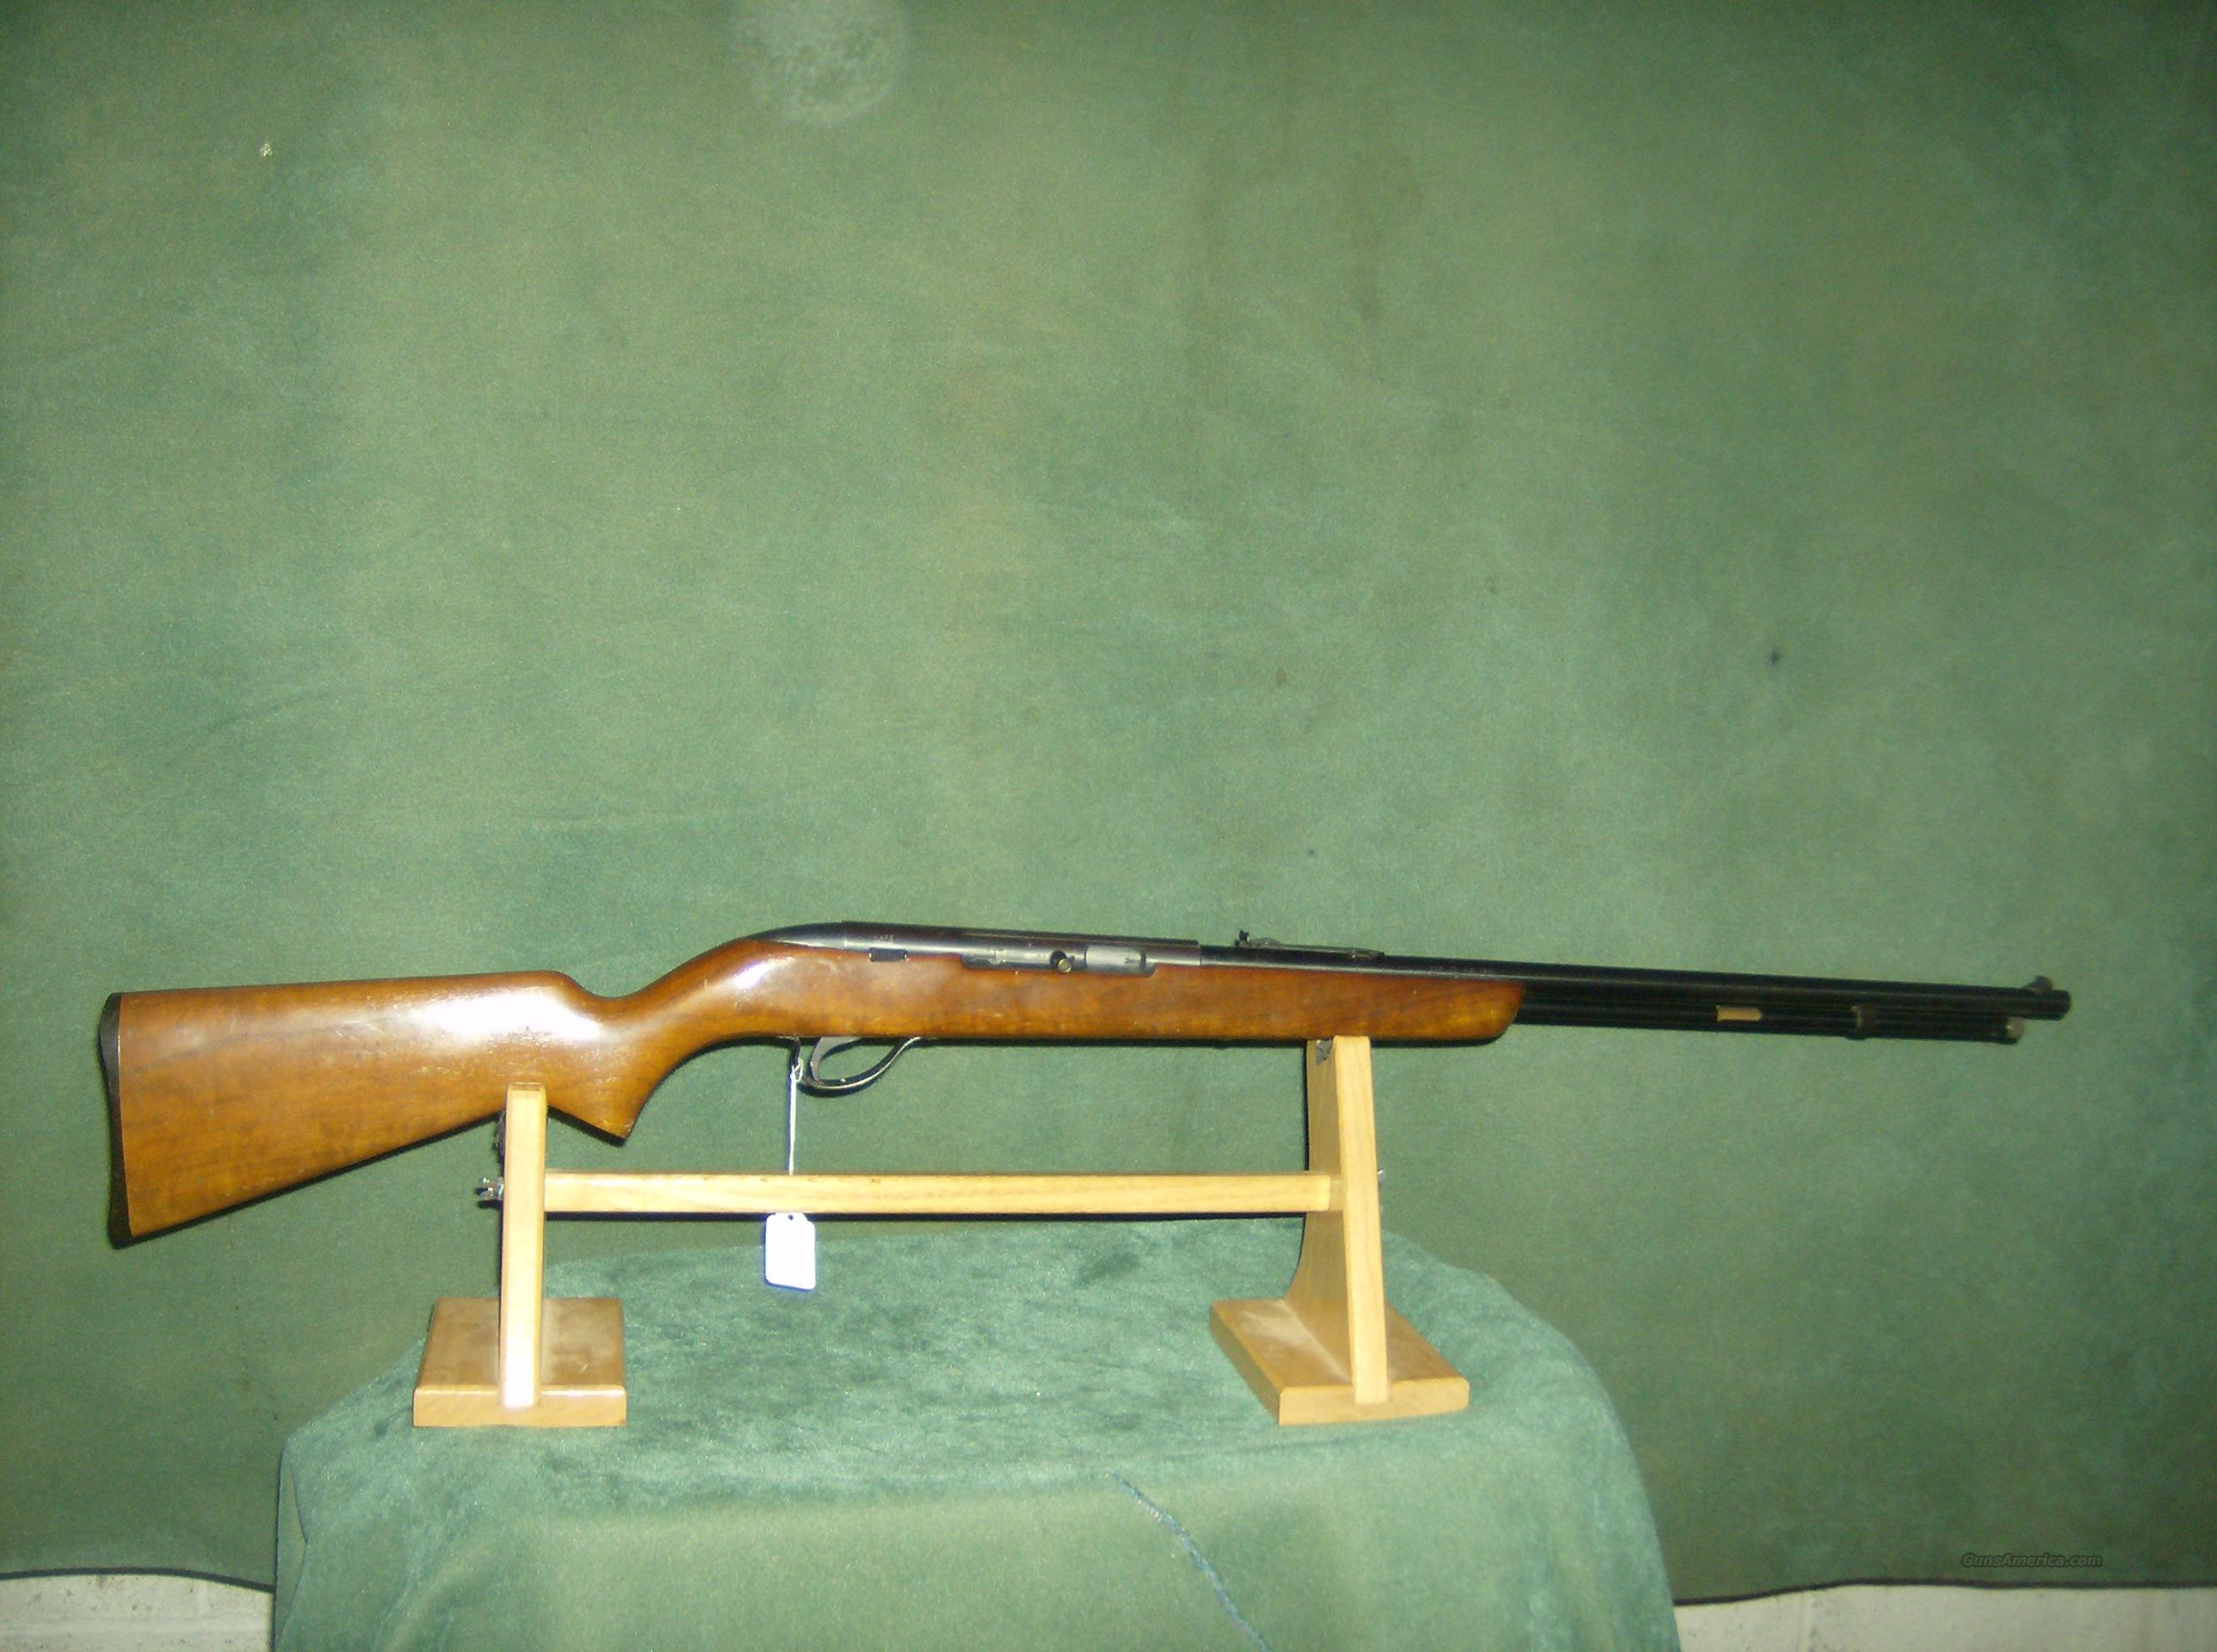 J.C. HIGGINS 22 SEMI AUTO MADE BY SAVAGE  Guns > Rifles > Savage Rifles > Other